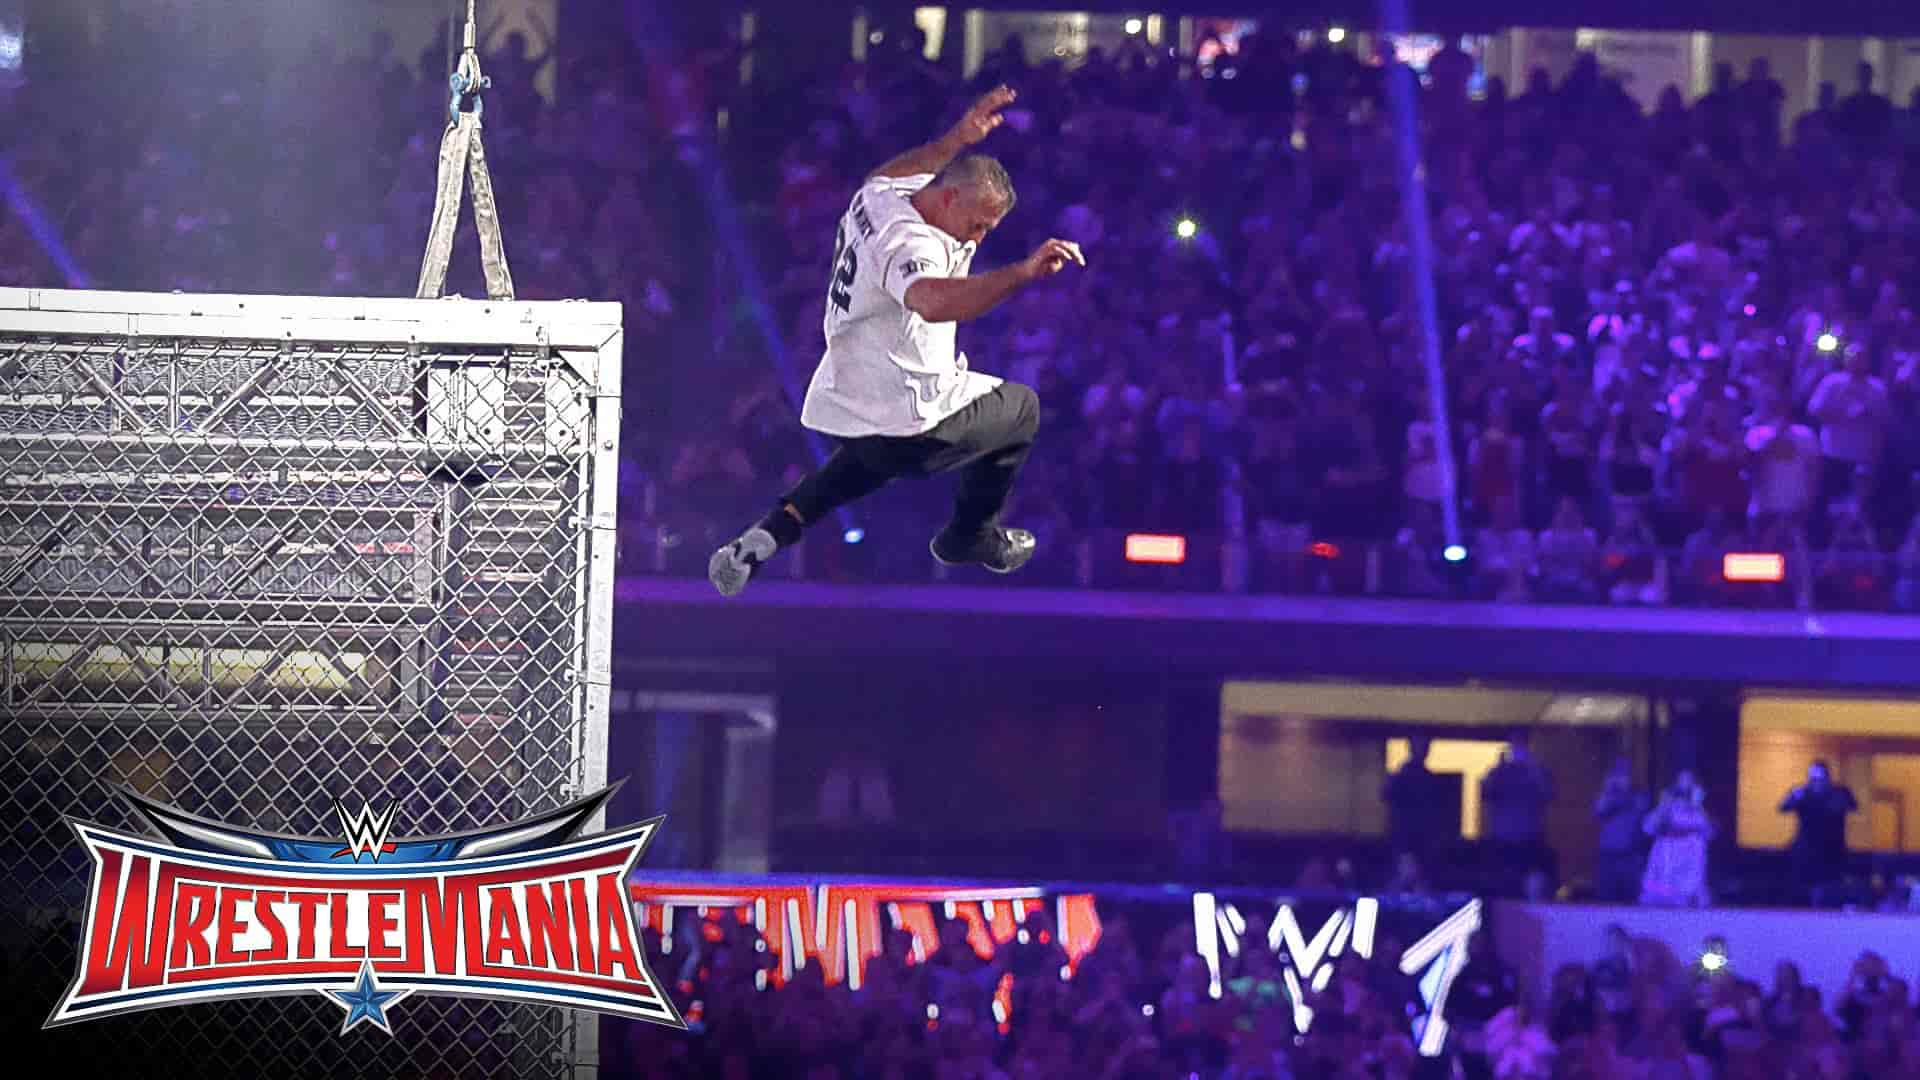 Shane McMahon jump Hell In a Cell at WrestleMania 32